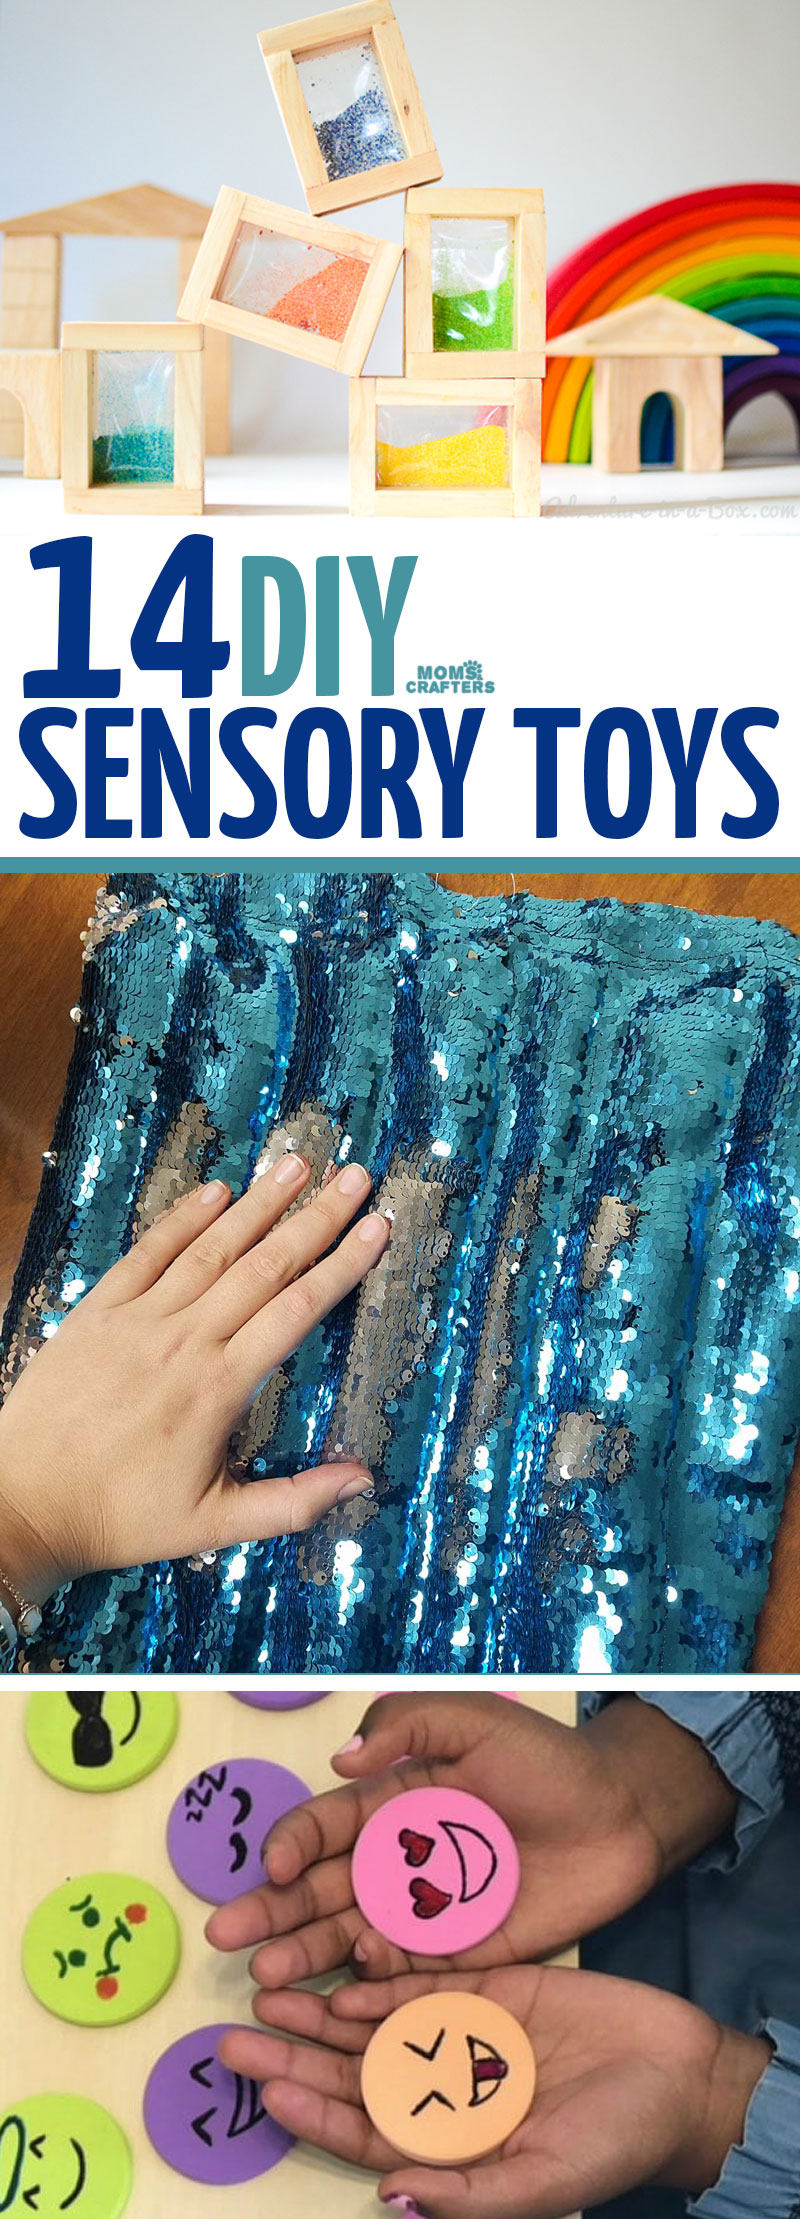 14 Cool DIY sensory toys that moms and dads can make as DIY gifts for kids of all ages! You'll find calming and texture sensory input toys for babies, preschoolers, toddlers, and all kids! #sensory #diy #toys